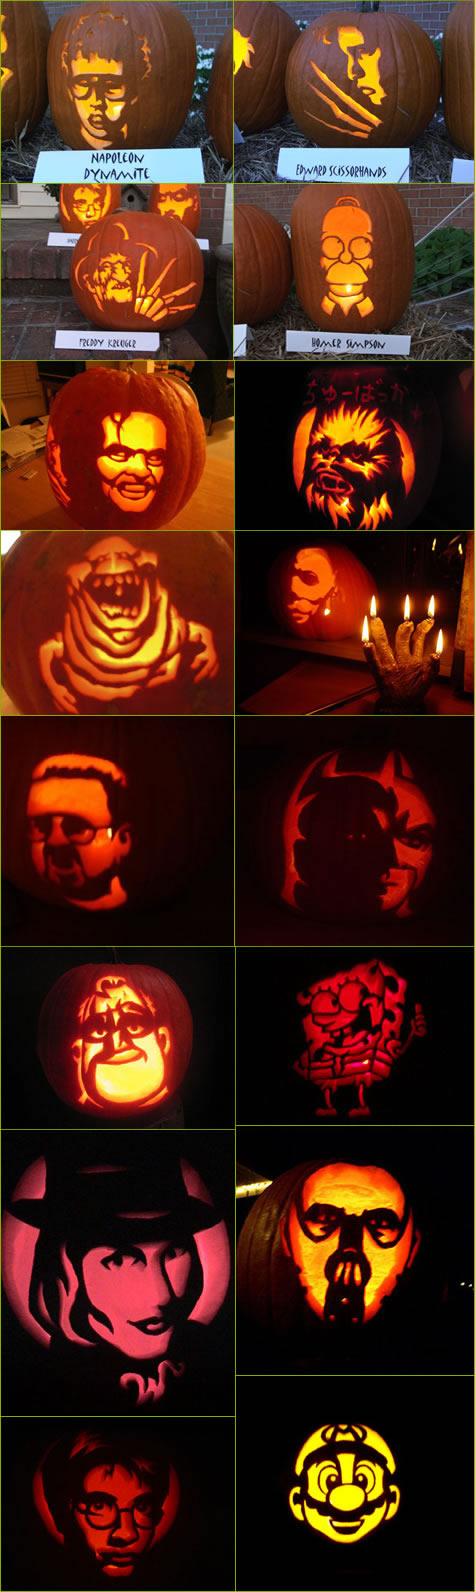 Funny Picture - Cool Halloween Pumpkins